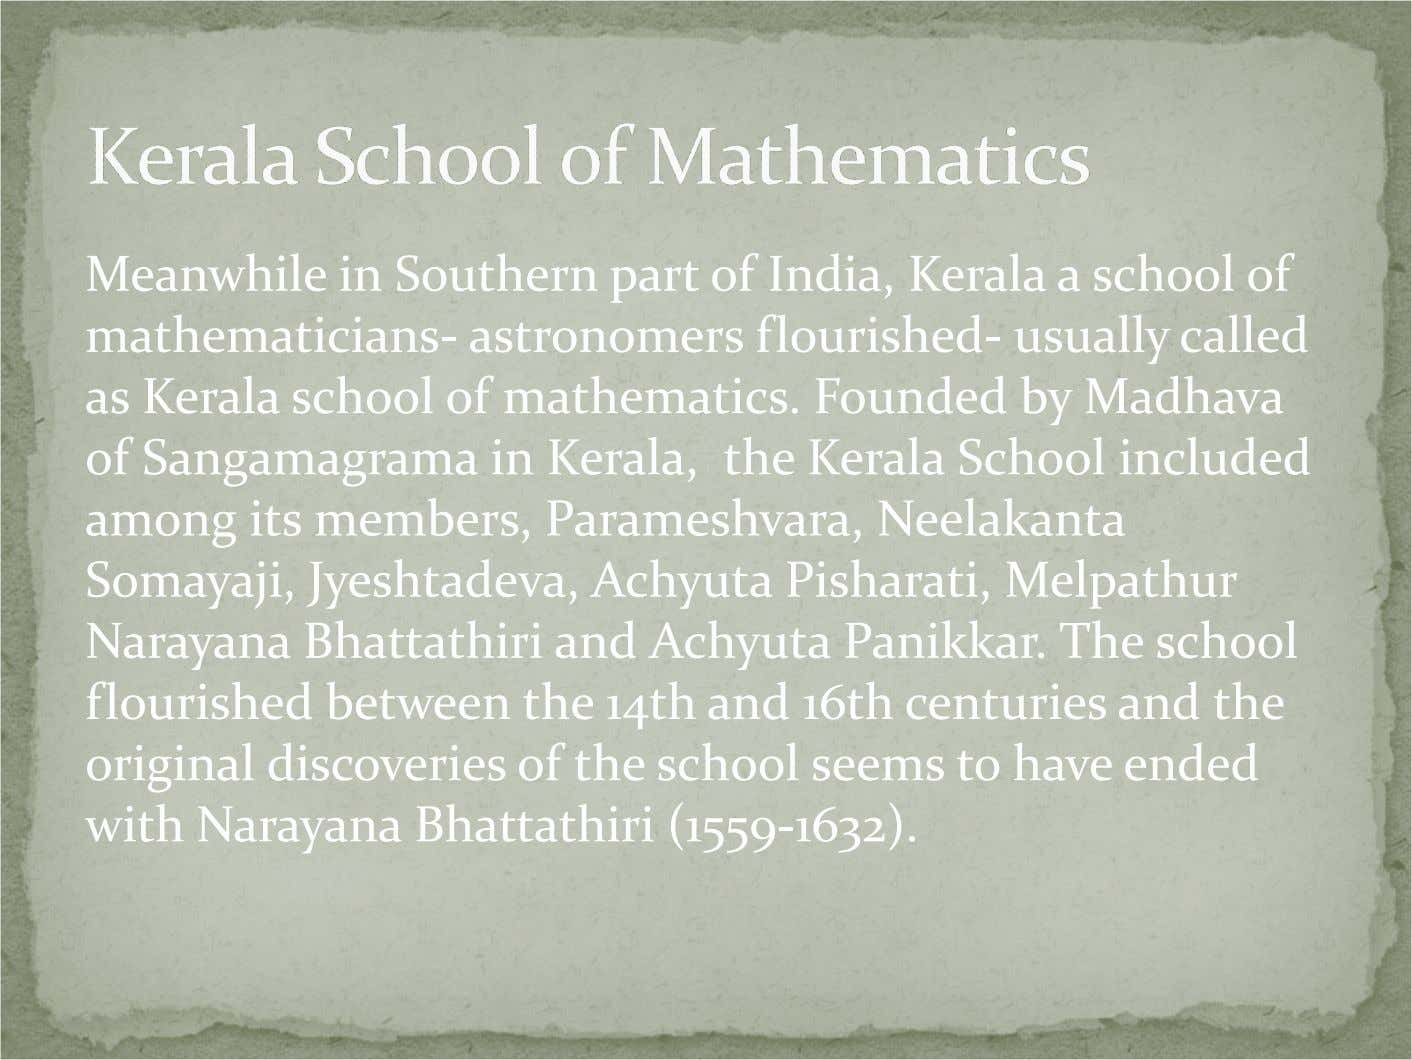 Meanwhile in Southern part of India, Kerala a school of mathematicians- astronomers flourished- usually called